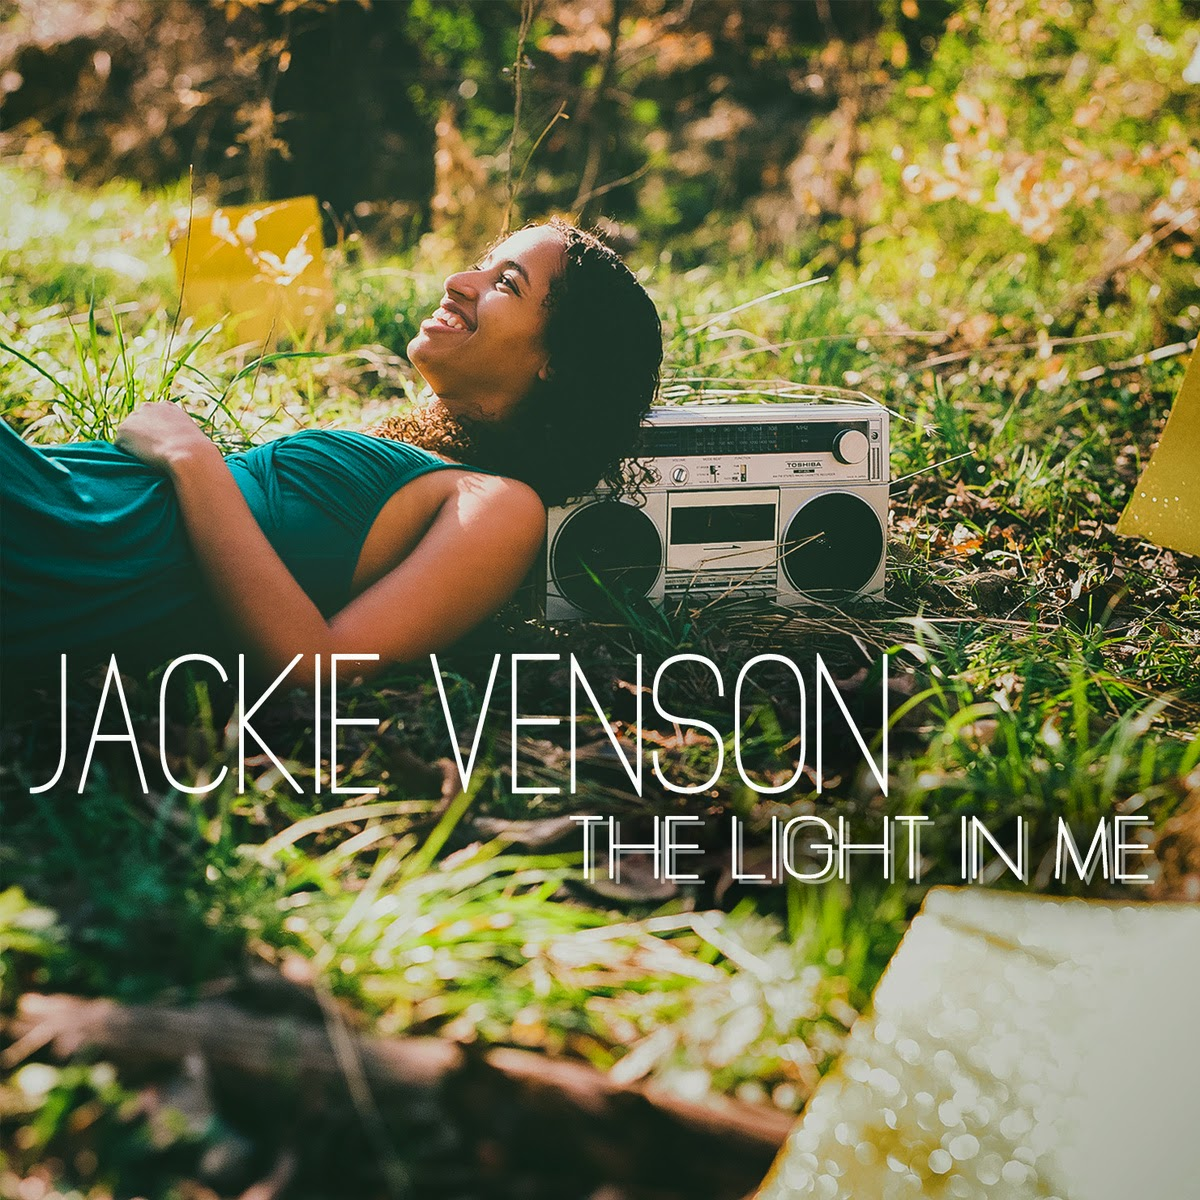 http://www.d4am.net/2014/07/jackie-venson-light-in-me.html